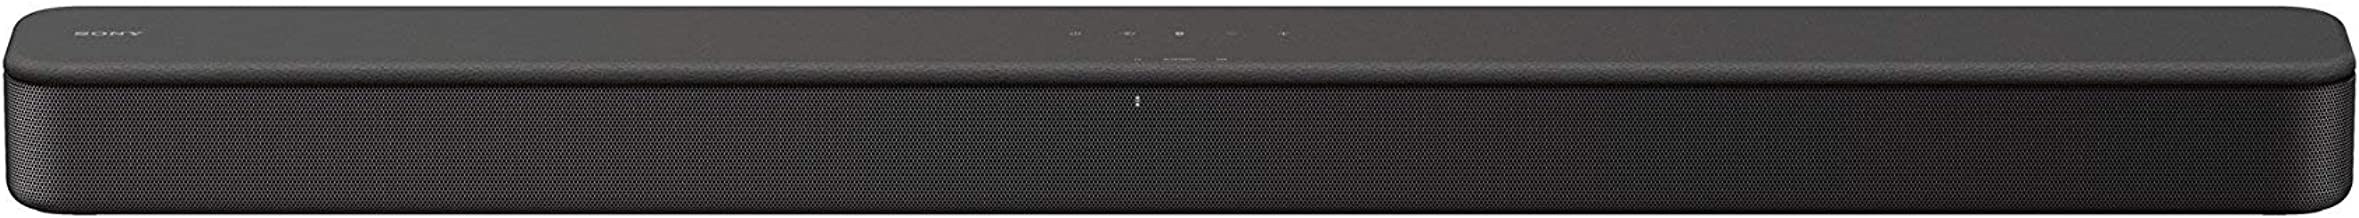 Sony S100F 2.0ch Sound Bar with Bass Reflex Speaker, Integrated Tweeter and Bluetooth, (HTS100F) (Renewed)